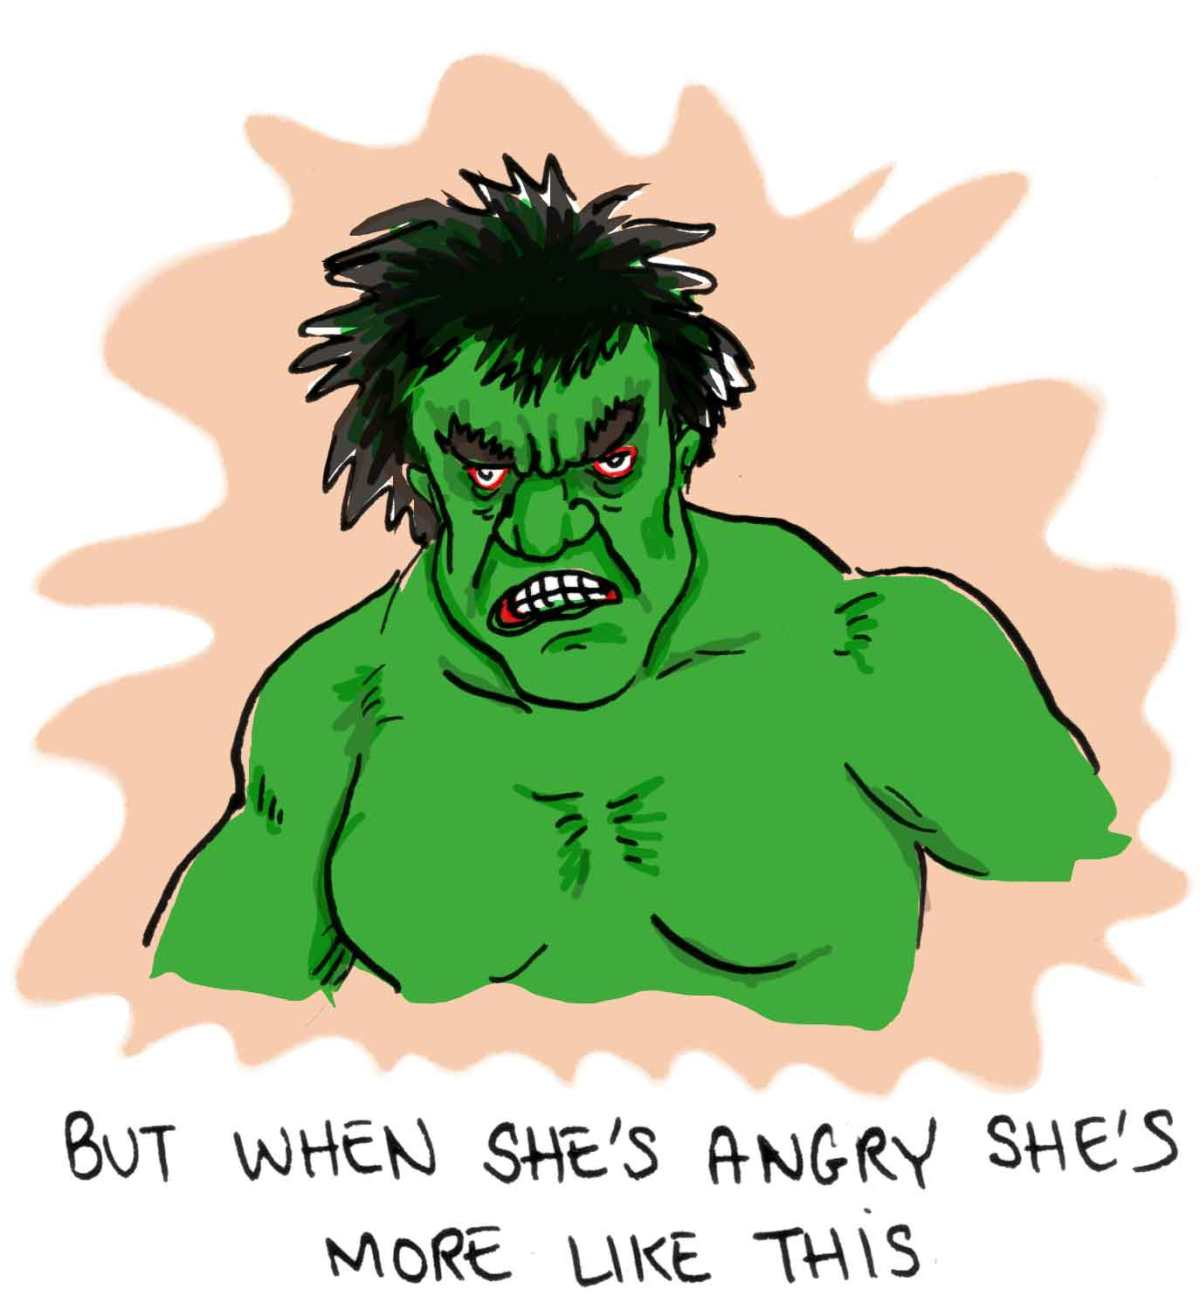 But when she's angry she's more like the Hulk.